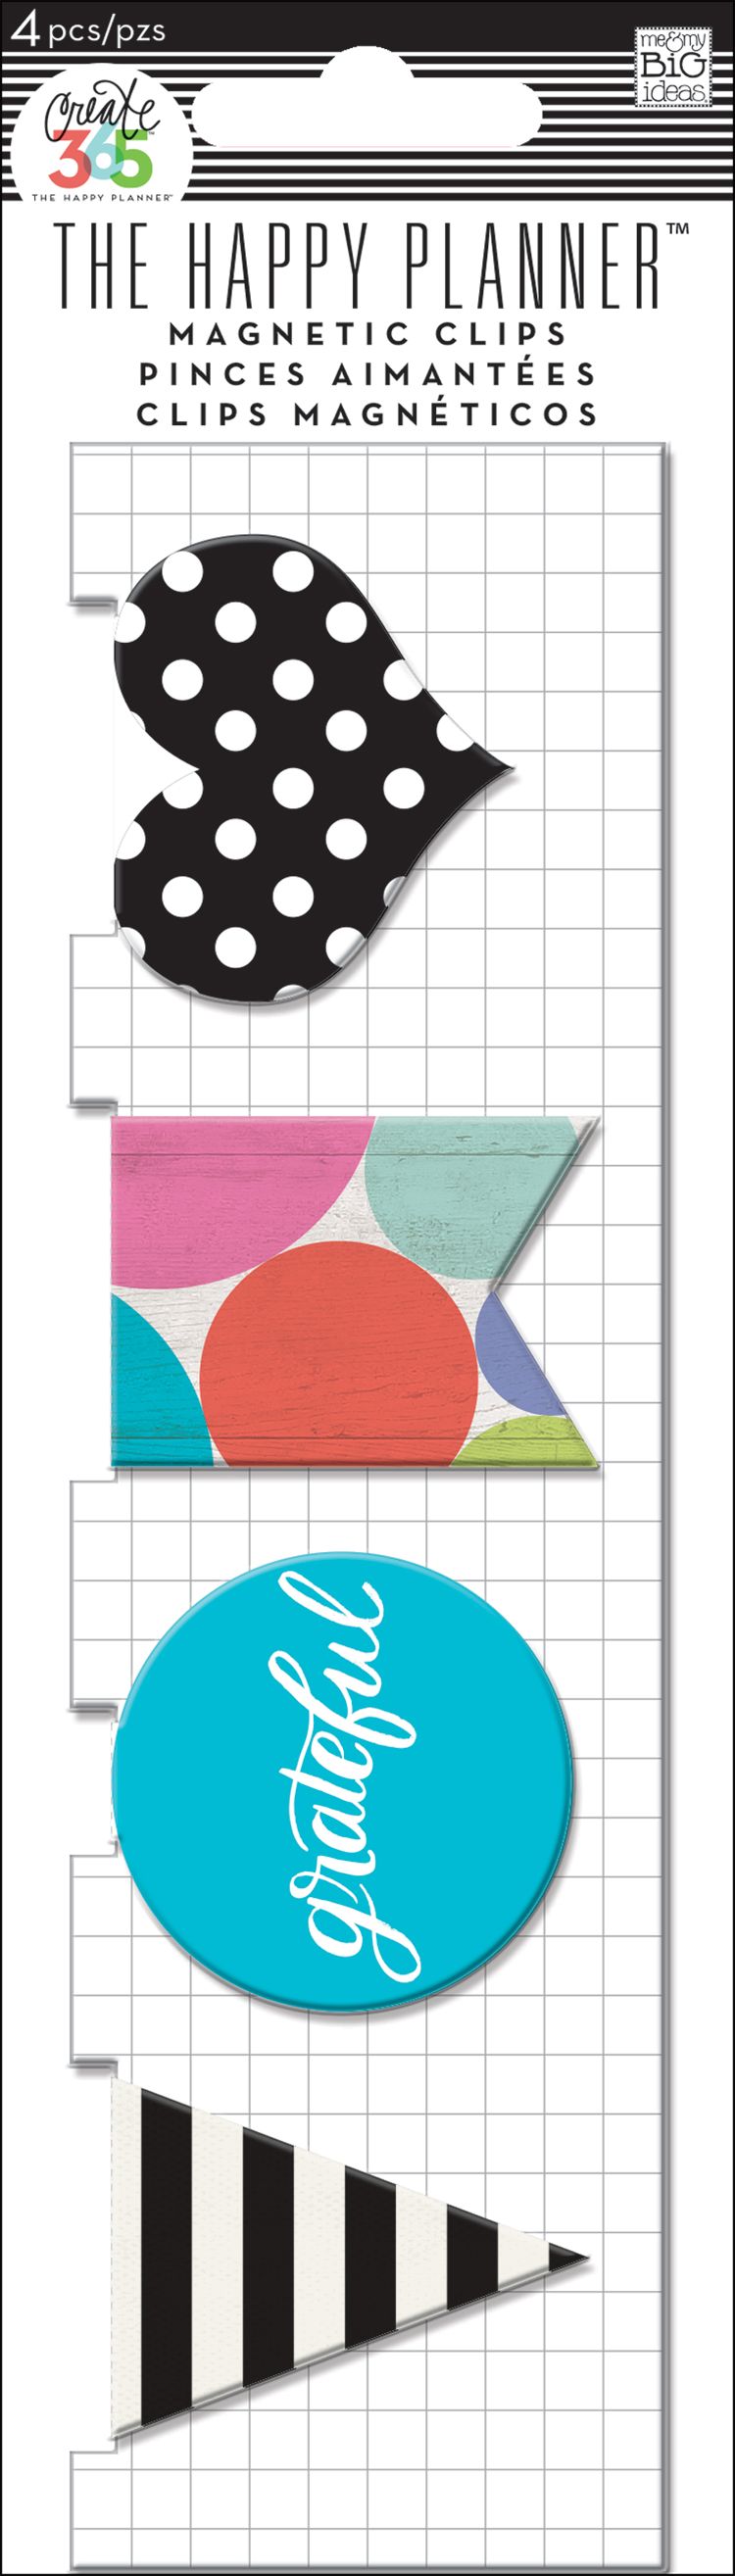 'Grateful' Magnetic Page Markers for The Happy Planner™ | me & my BIG ideas.jpg